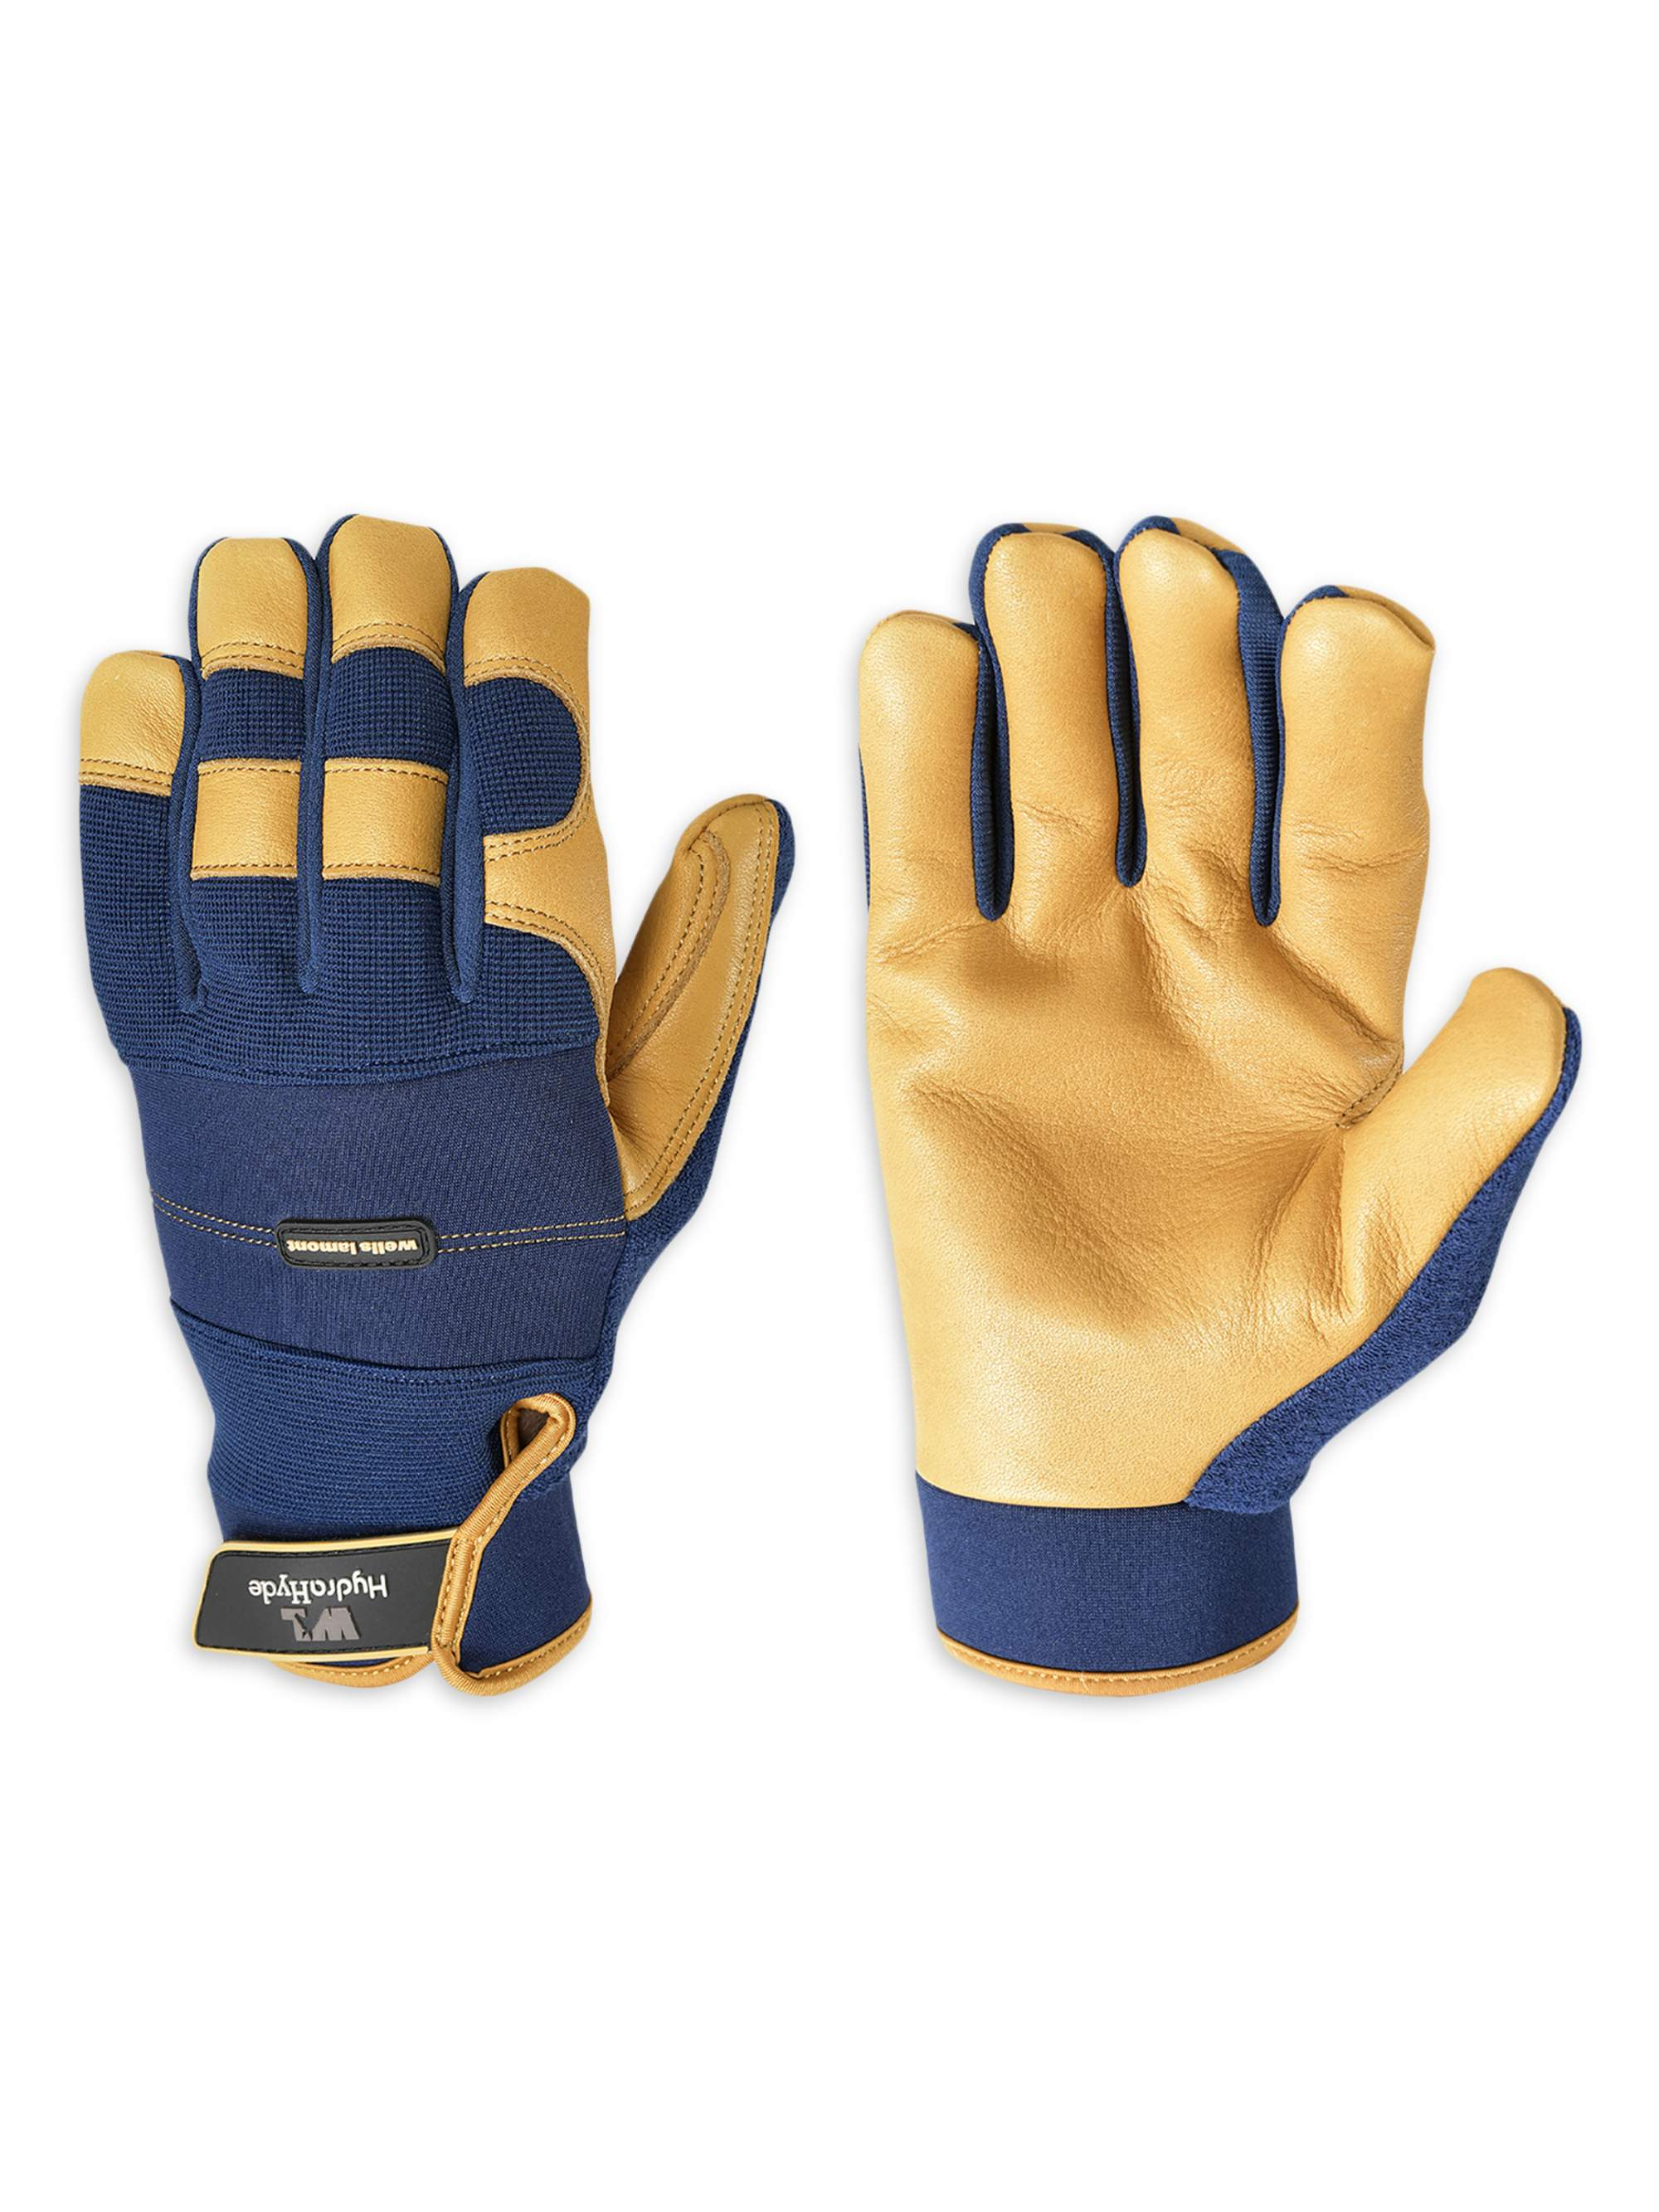 FACTORY OUTLET Tommy Tou Mens/' Luxury Leather Gloves HALF PRICE!